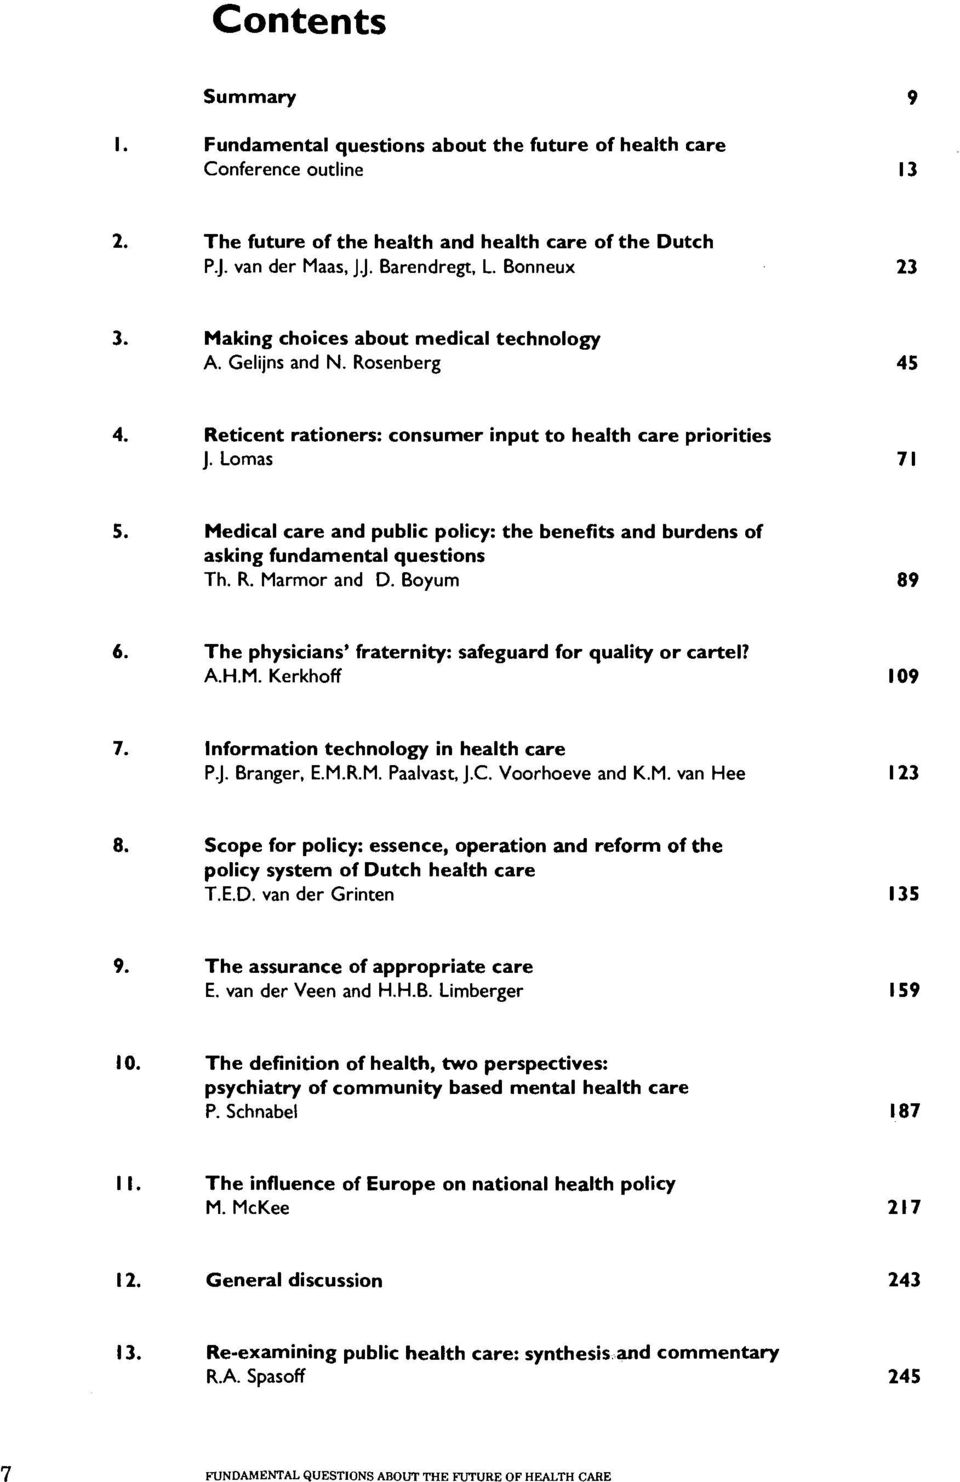 Lomas Medical care and public policy: the benefits and burdens of asking fundamental questions Th. R. Marmor and D. Boyurn The physicians' fraternity: safeguard for quality or cartel? A.H.M. Kerkhoff Information technology in health care P.